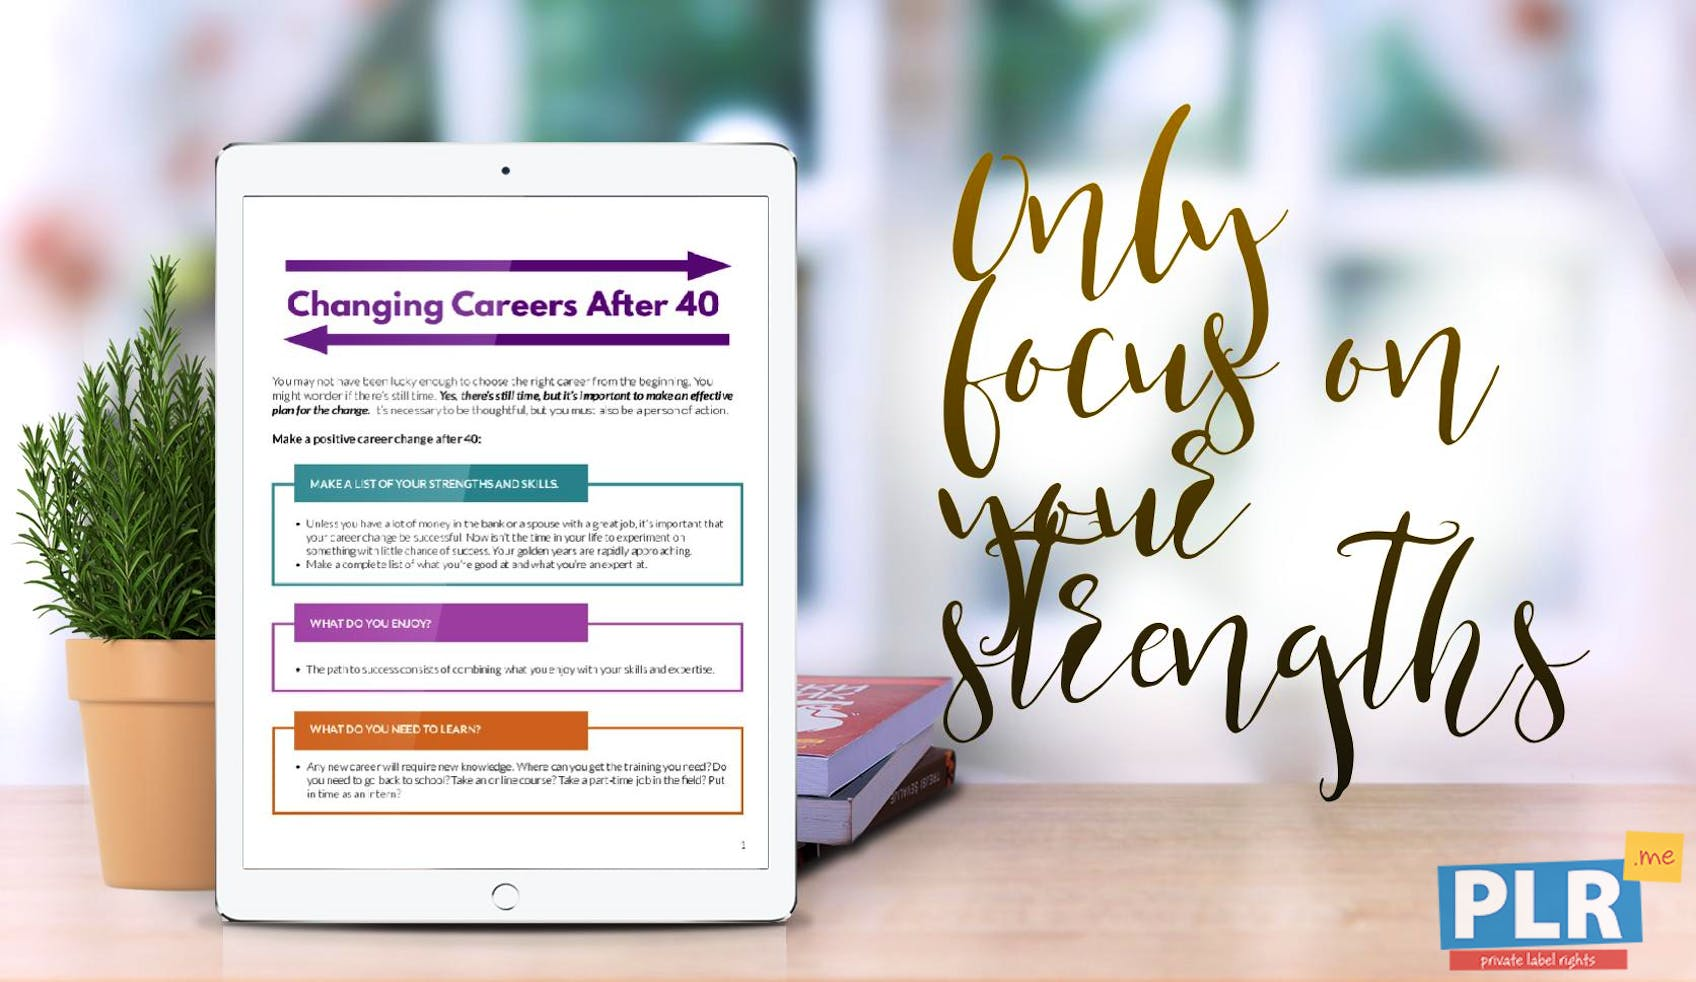 Changing Careers After 40